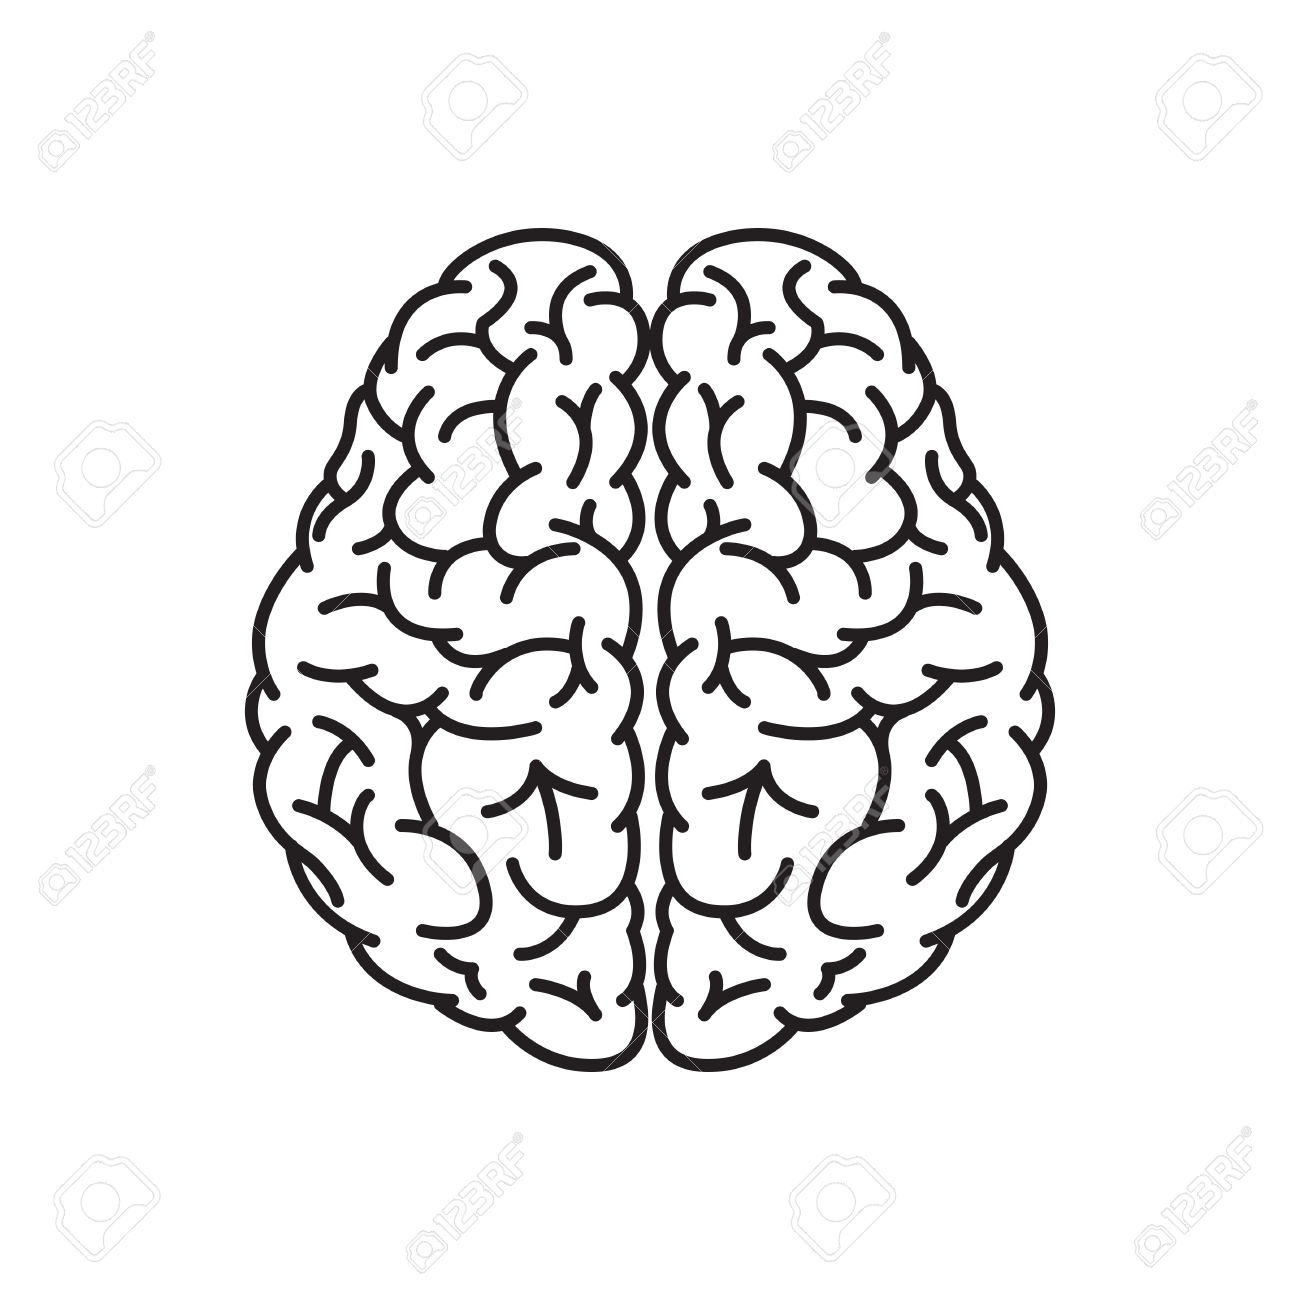 1300x1300 Brain Clipart Brain Outline